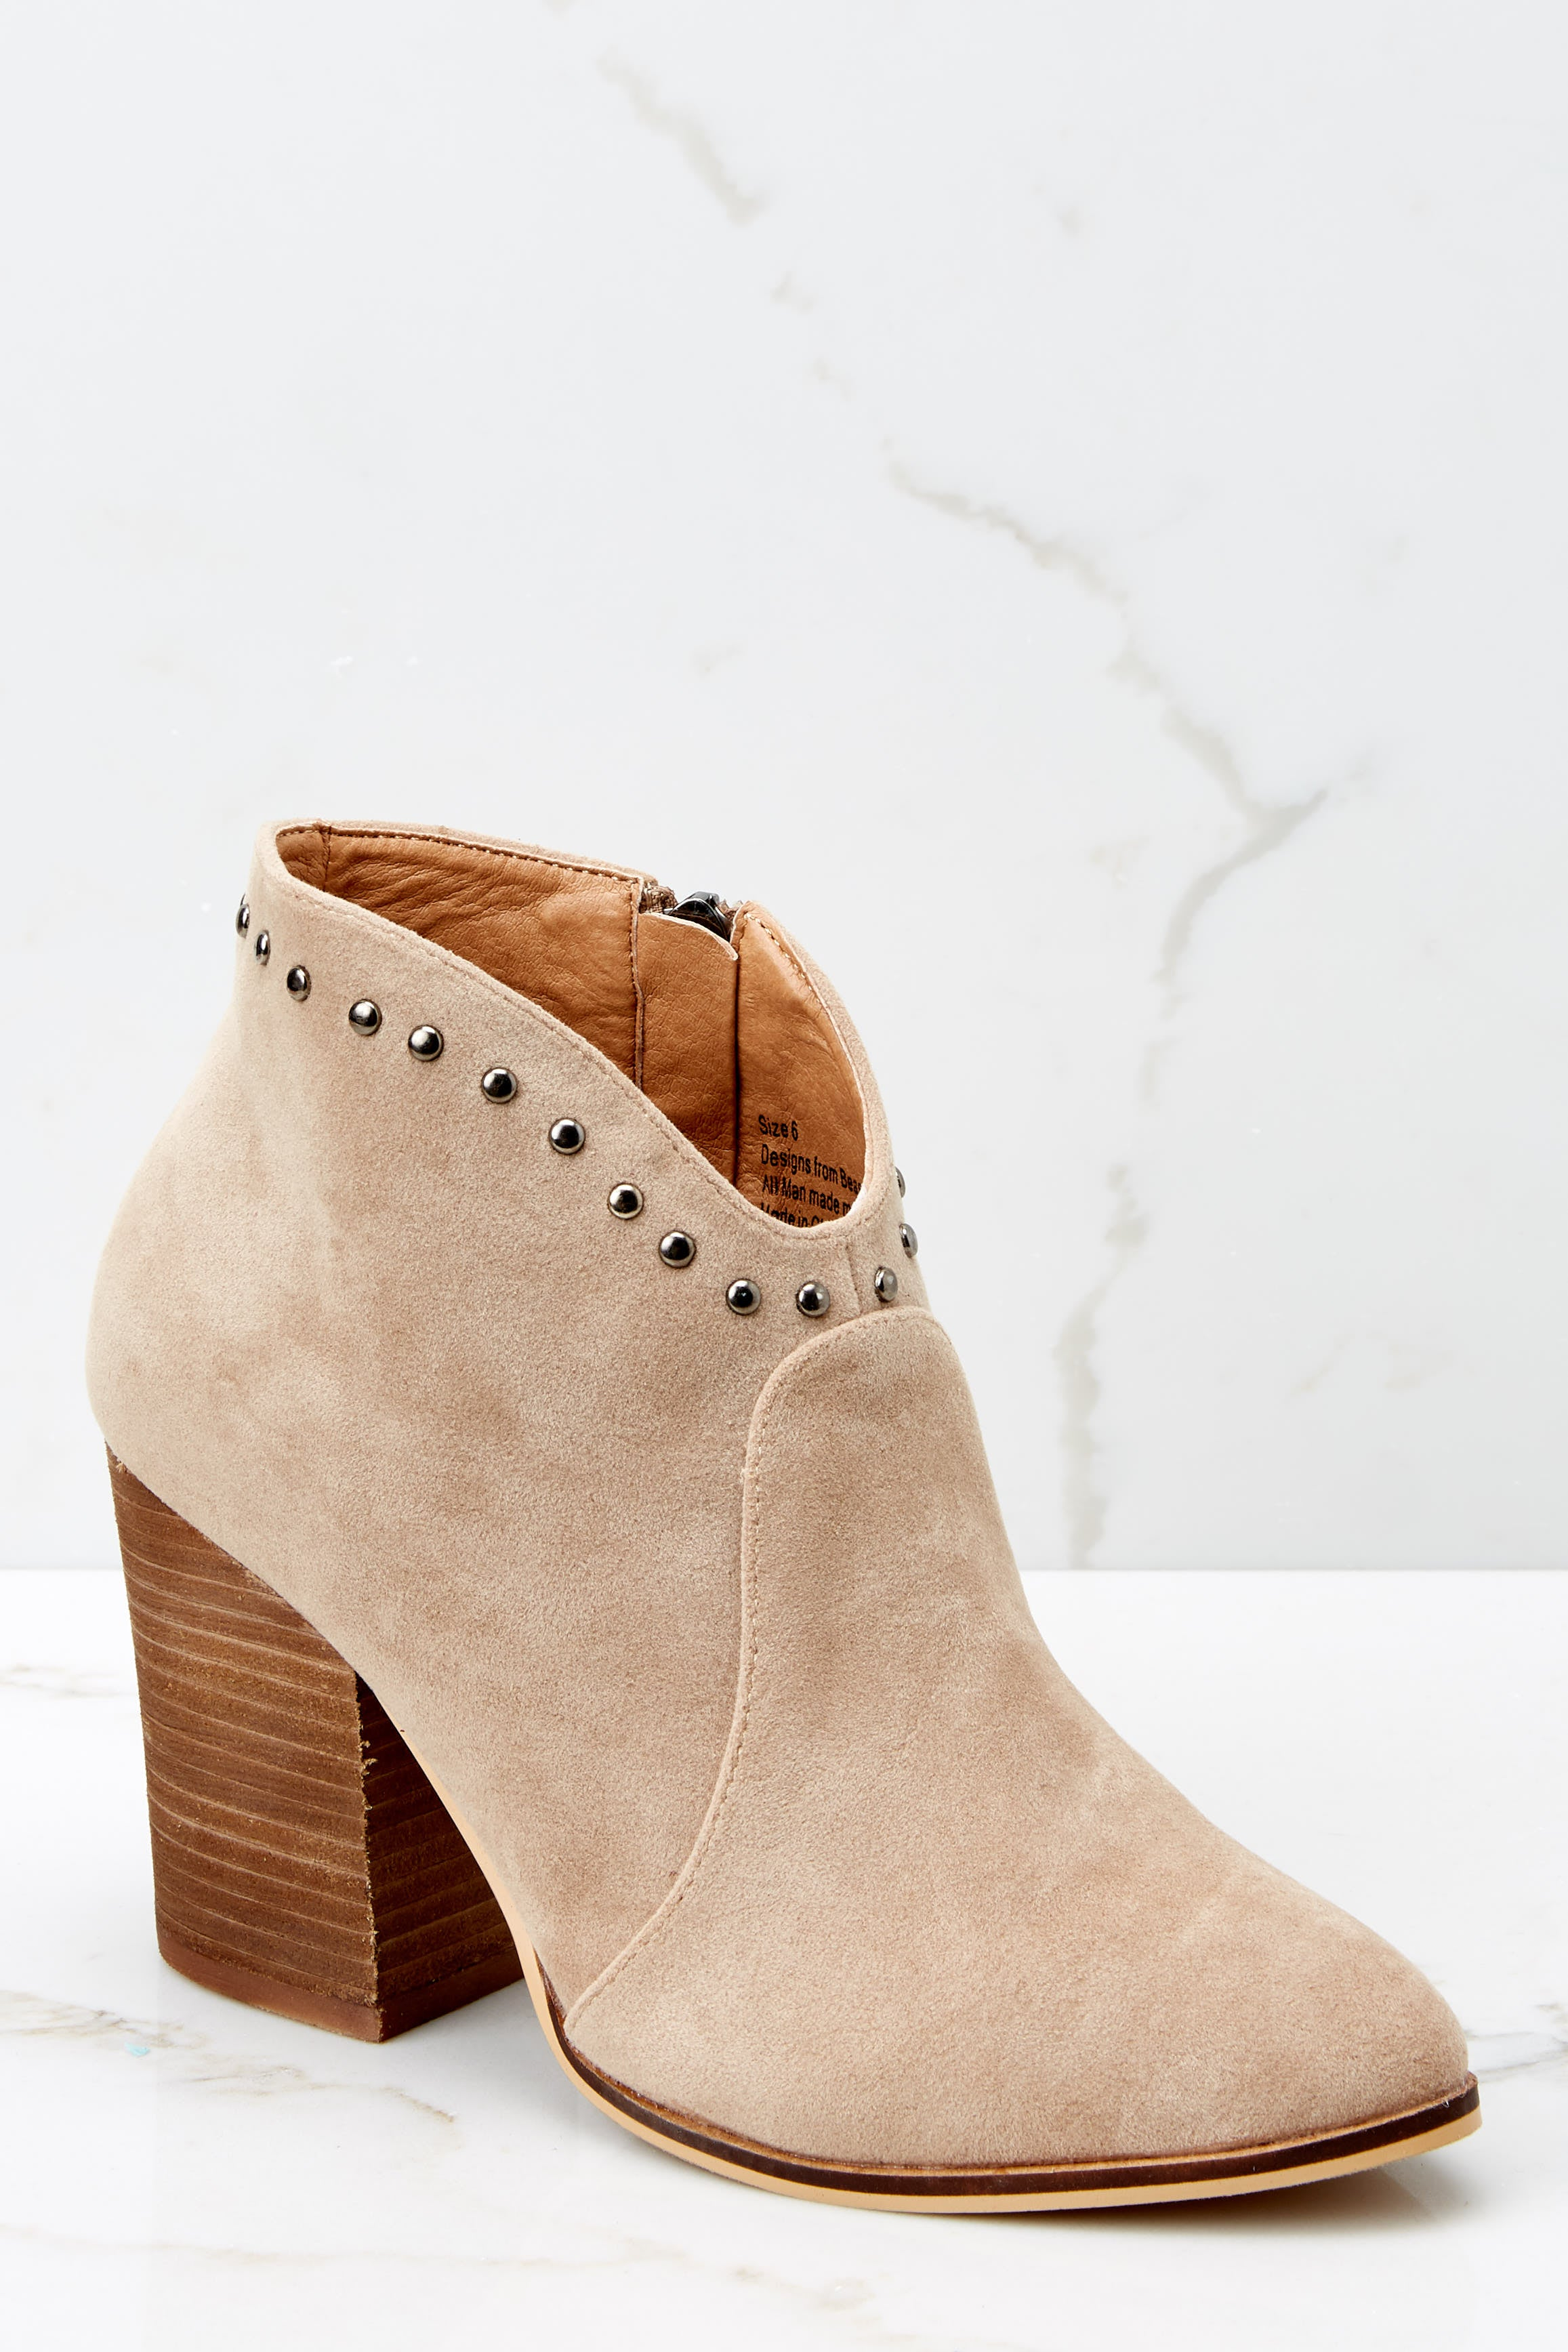 2 Wander Through Aspens Sand Beige Booties at reddressboutique.com